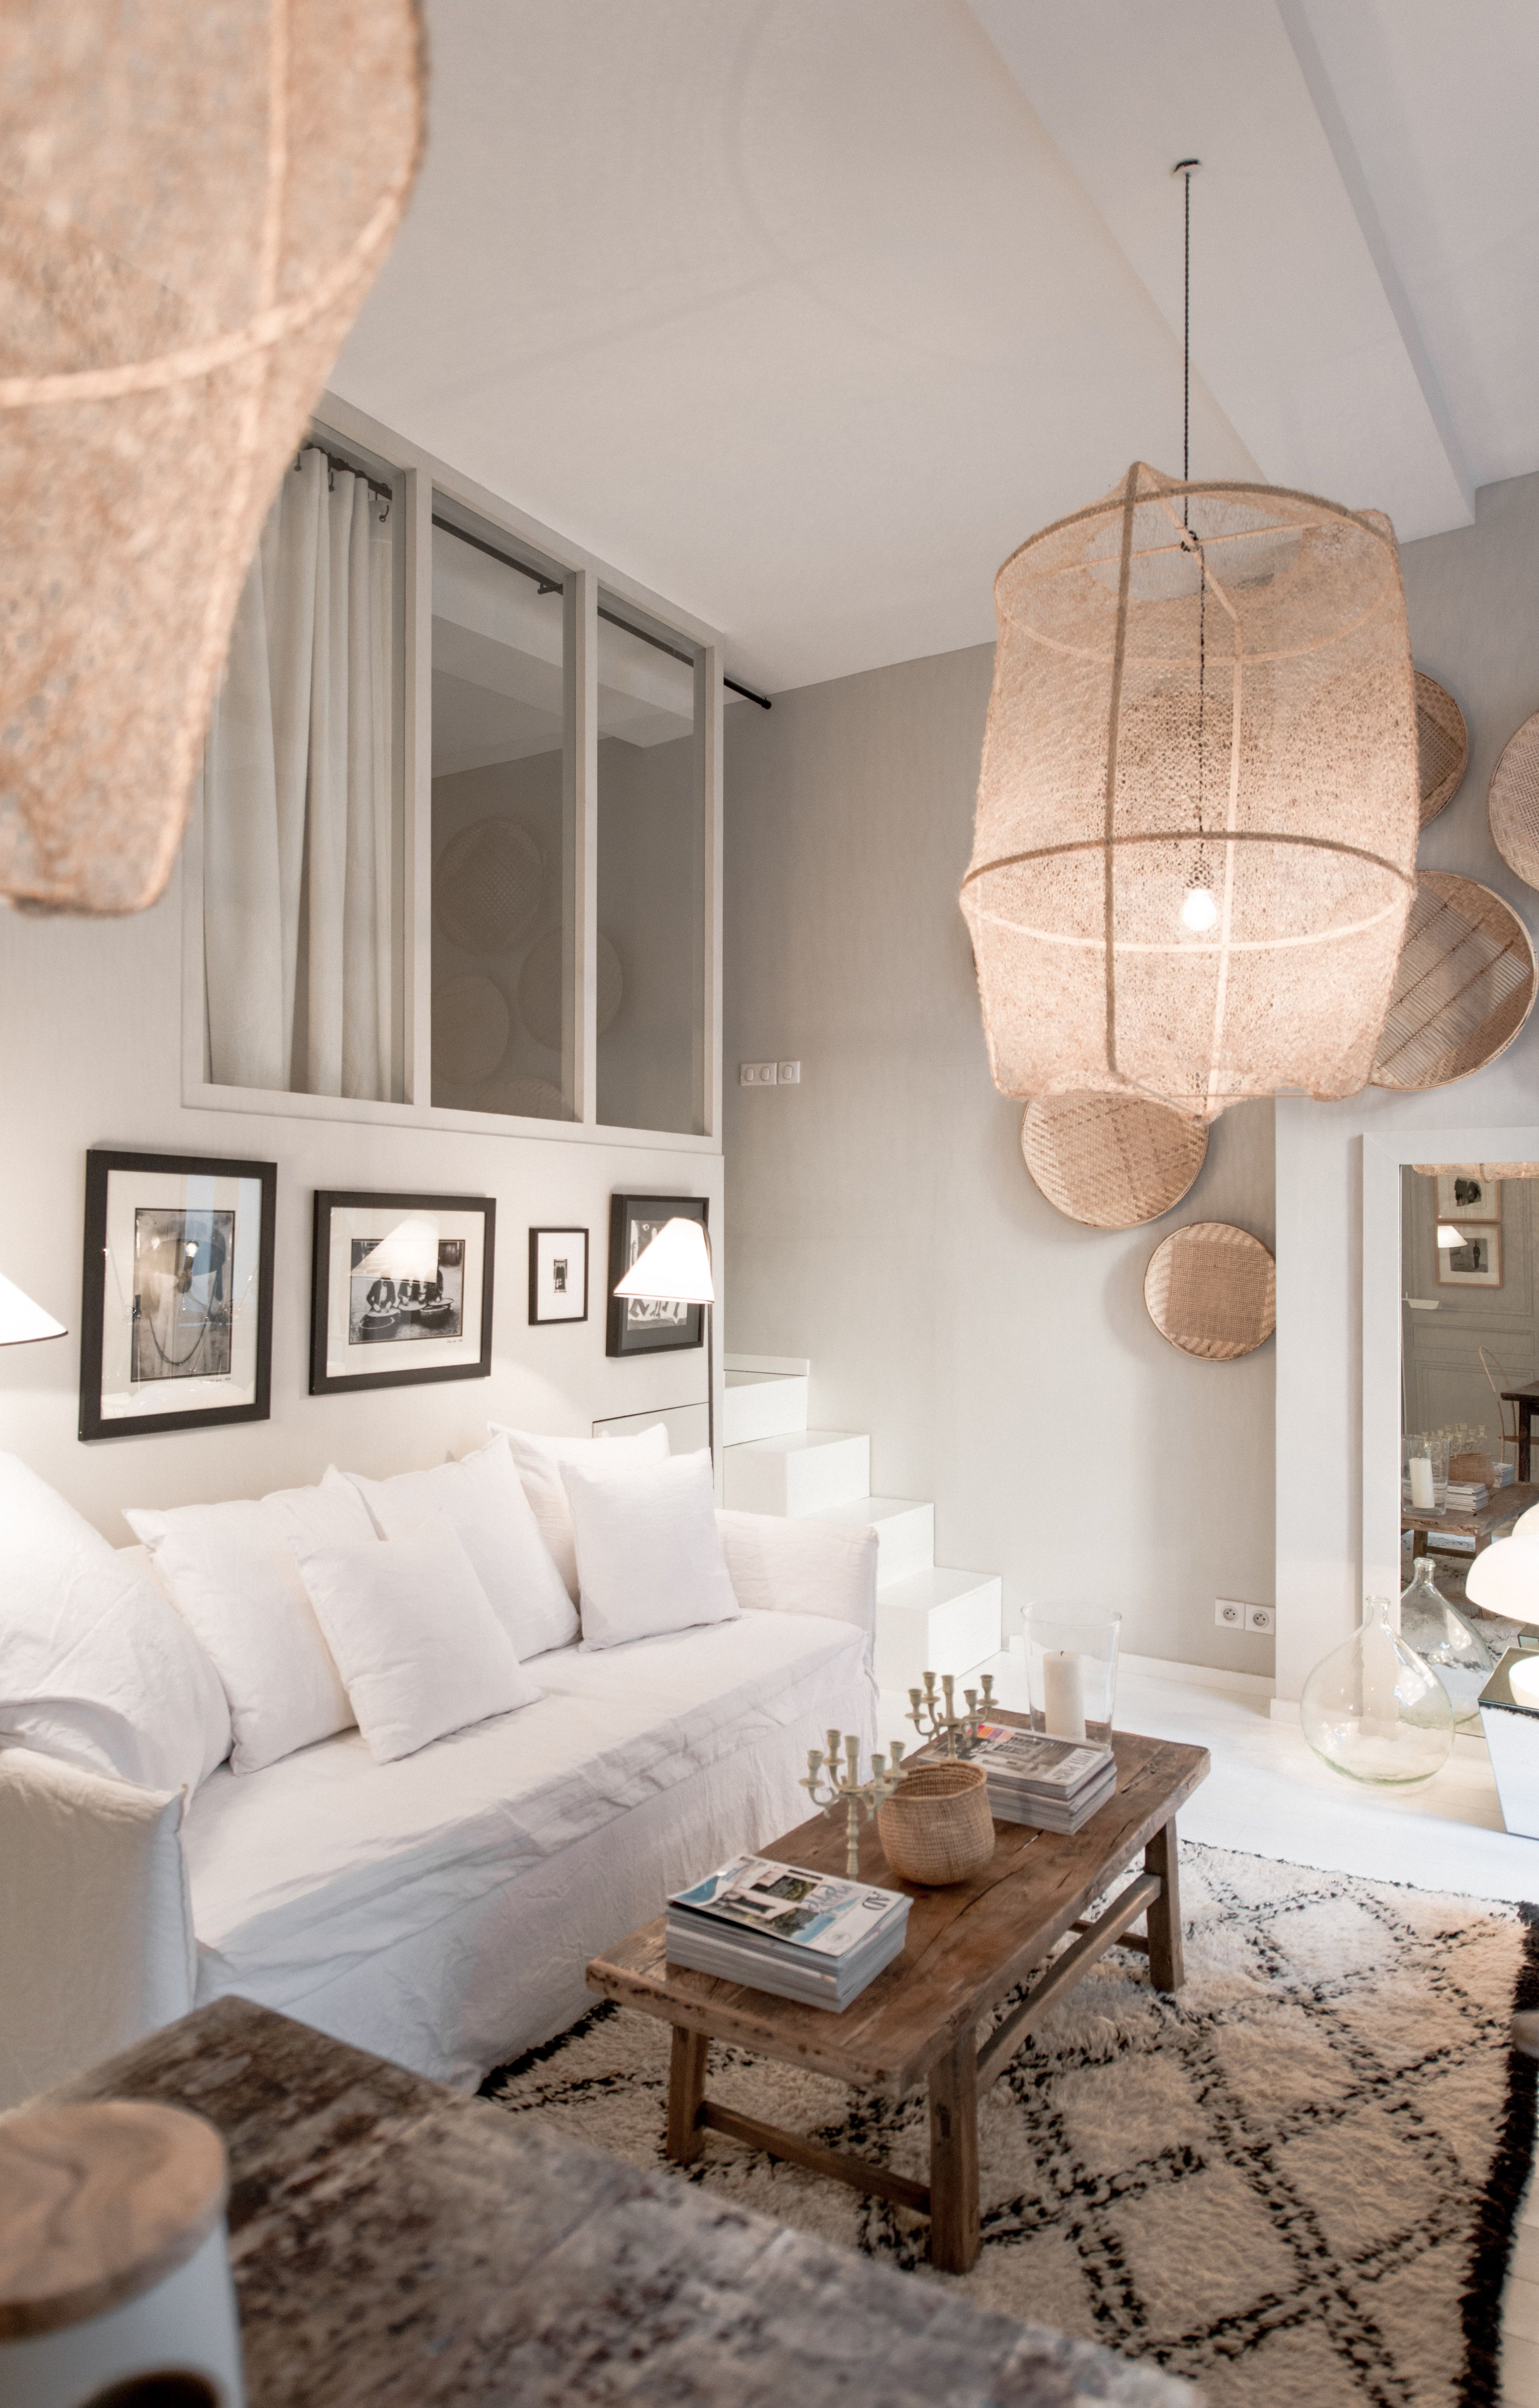 Appartement Blanc By Maison HAND. Lyon - JUST SO BEAUTIFUL WITH